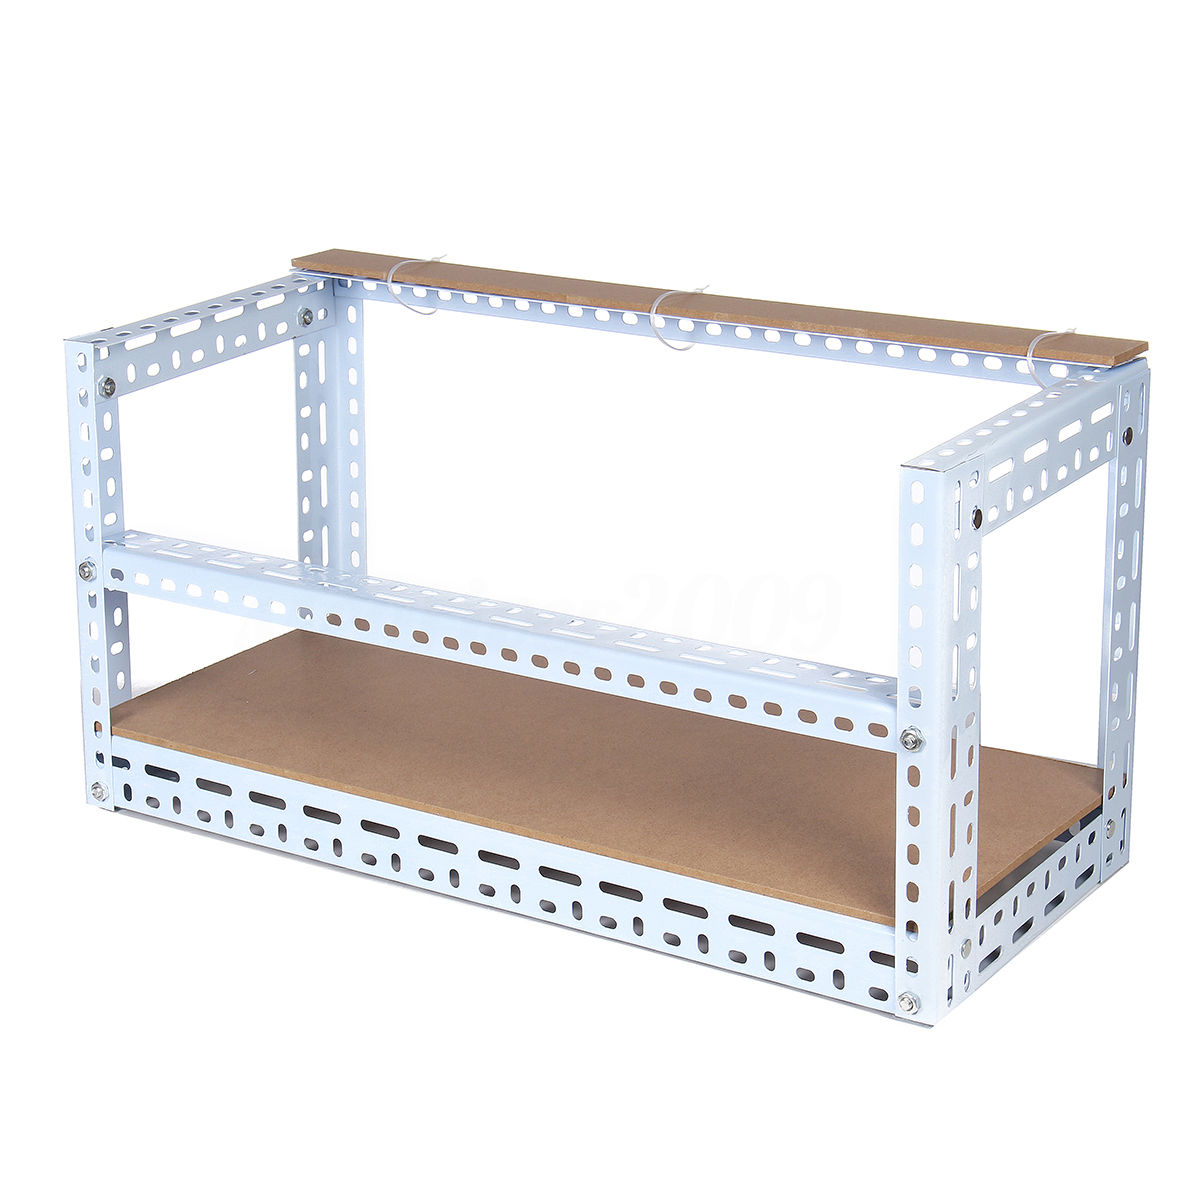 4 Gpu Steel Frame Ming Rig Case Mining Frame Crypto Coin